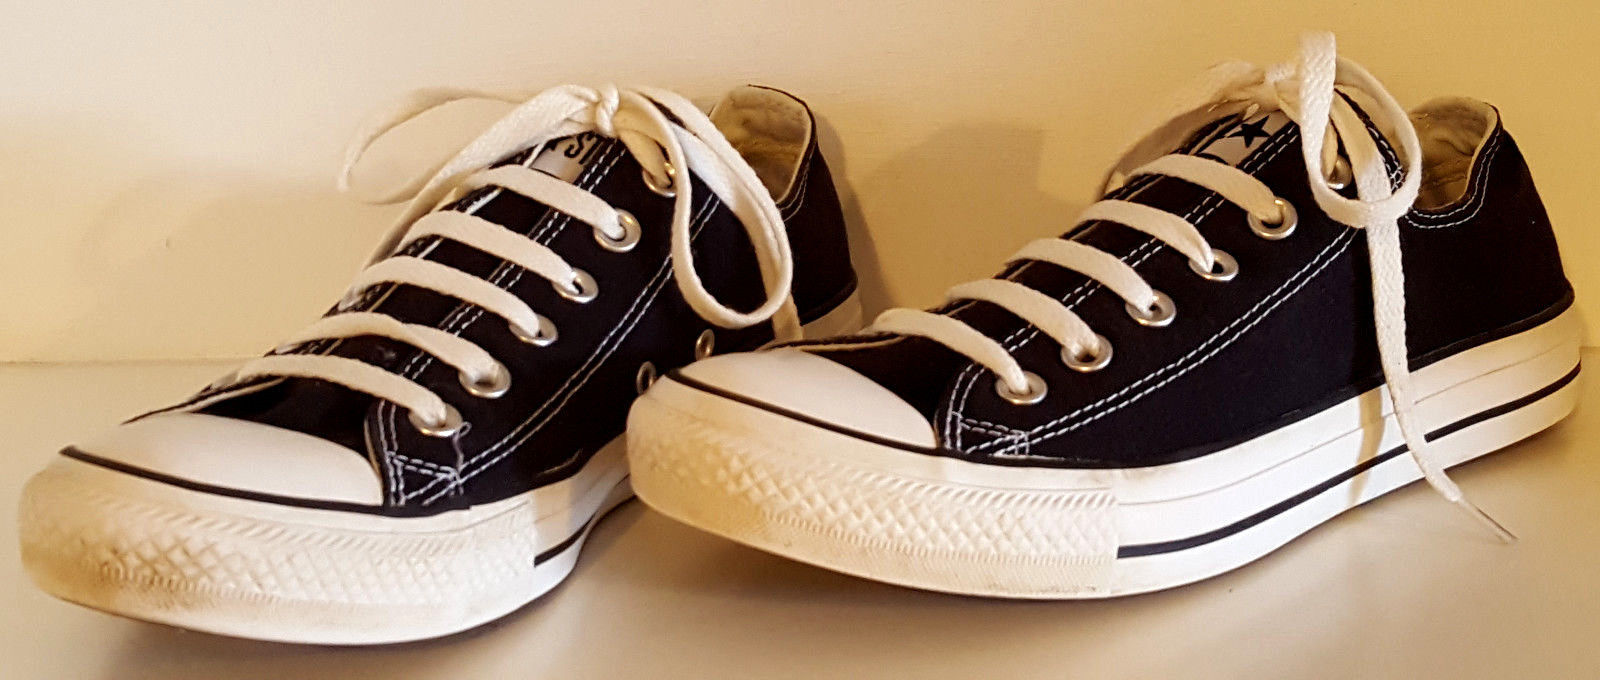 CONVERSE M9166 Chuck Taylor All Star Core Ox and 50 similar